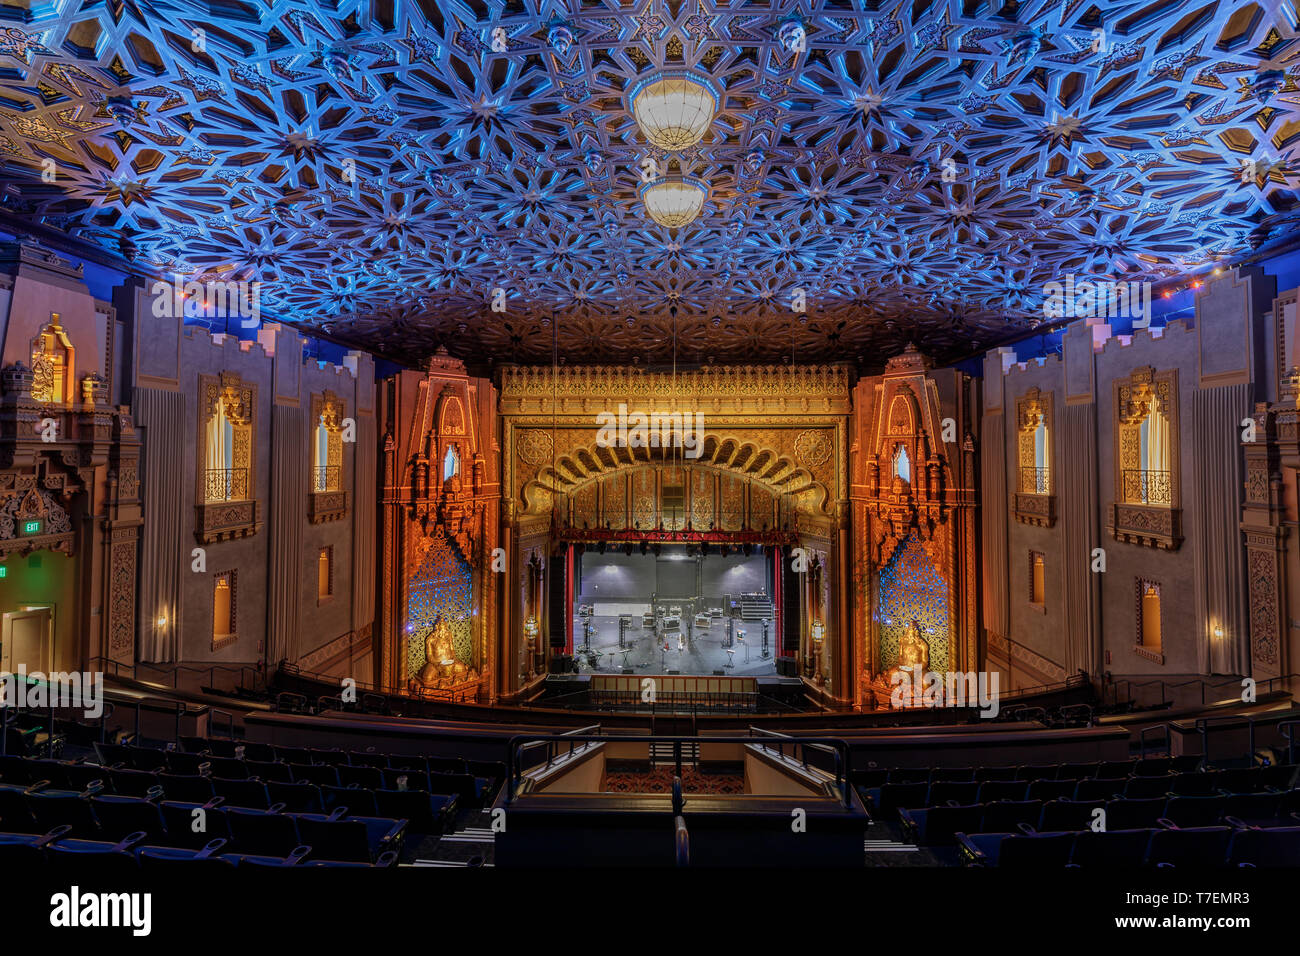 Oakland, California - May 4, 2019: Fox Oakland Theater right after a live show. - Stock Image